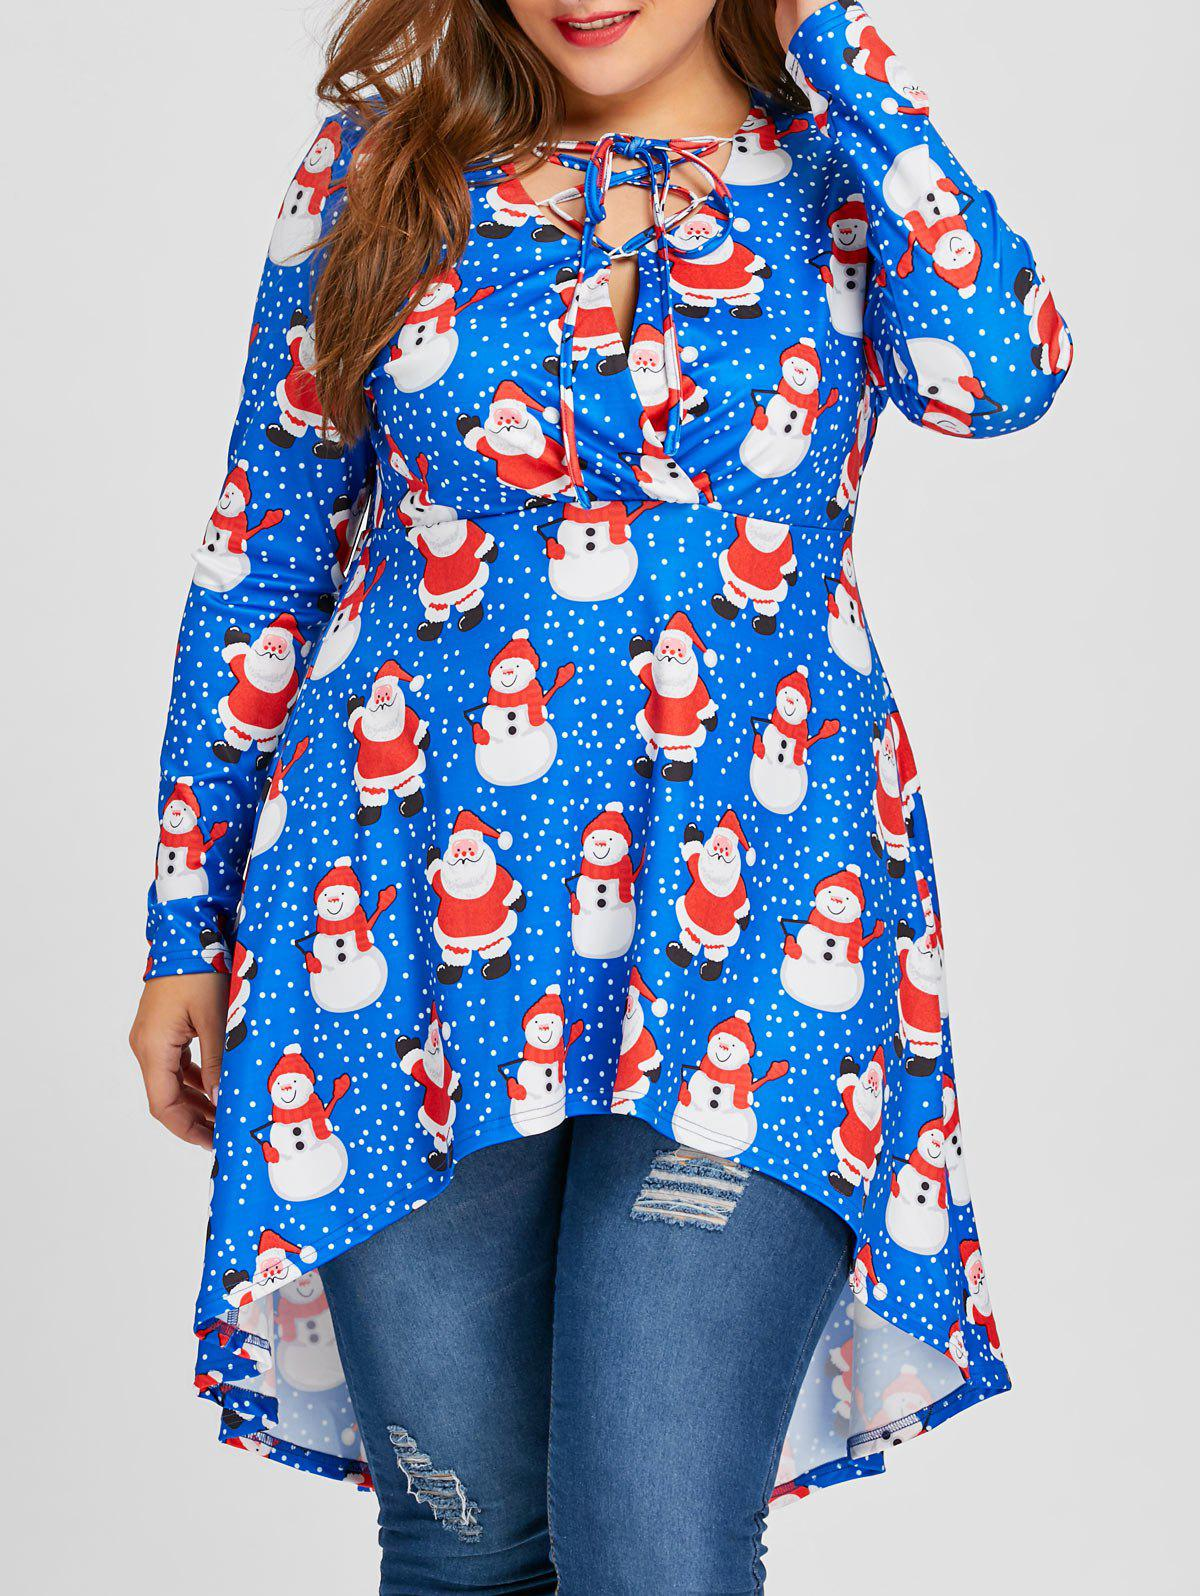 8a92ae6bd0c43 2019 Plus Size Christmas Snowman And Santa Print Lace Up Long Top ...